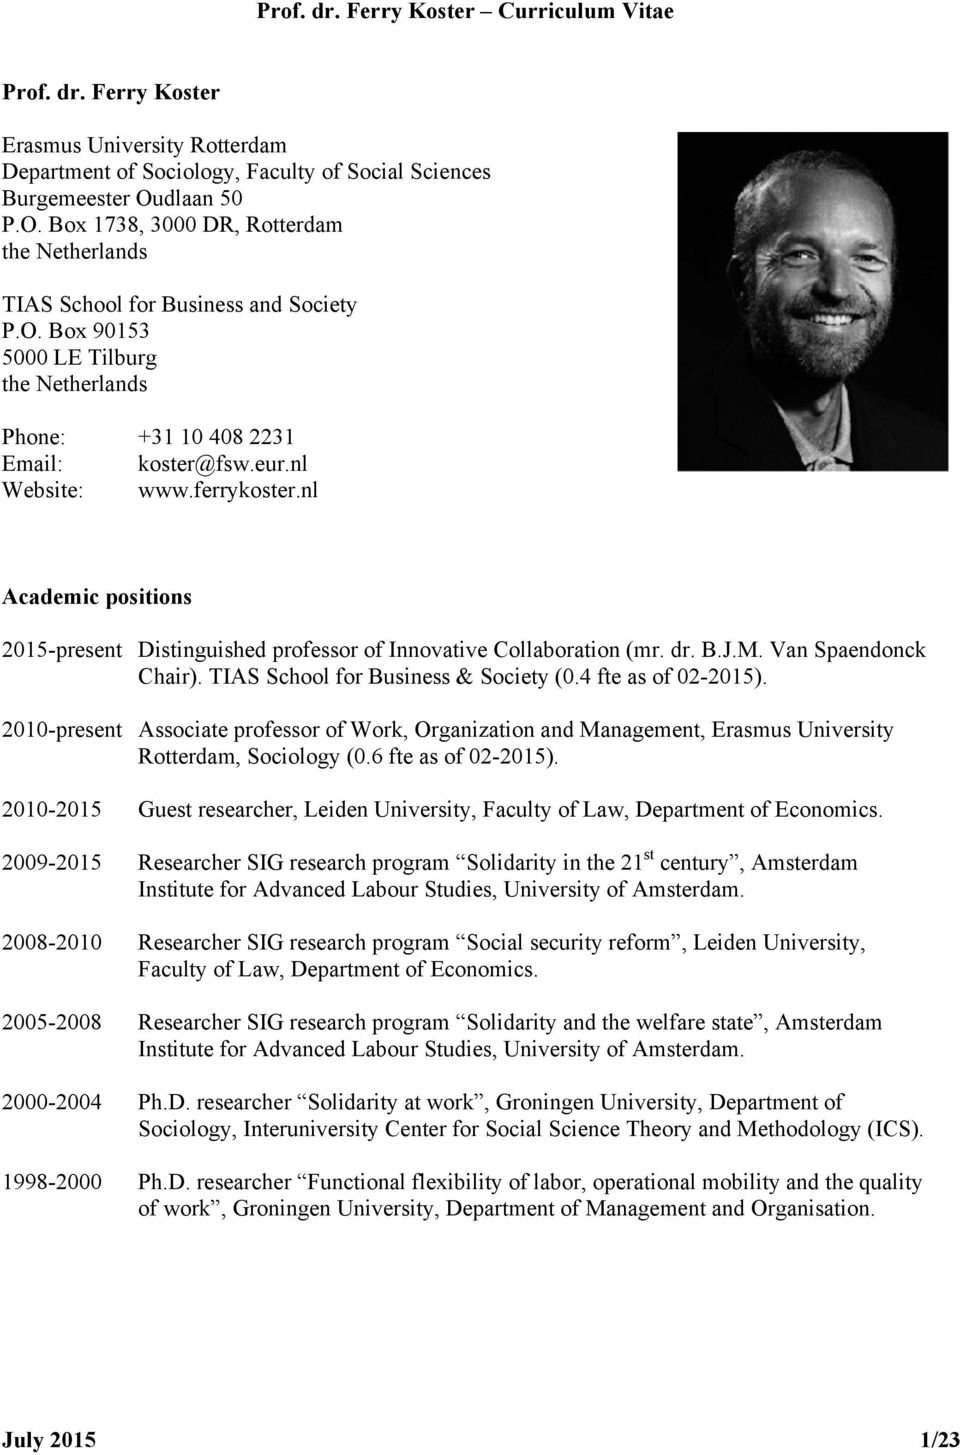 nl Website: www.ferrykoster.nl Academic positions 2015-present Distinguished professor of Innovative Collaboration (mr. dr. B.J.M. Van Spaendonck Chair). TIAS School for Business & Society (0.